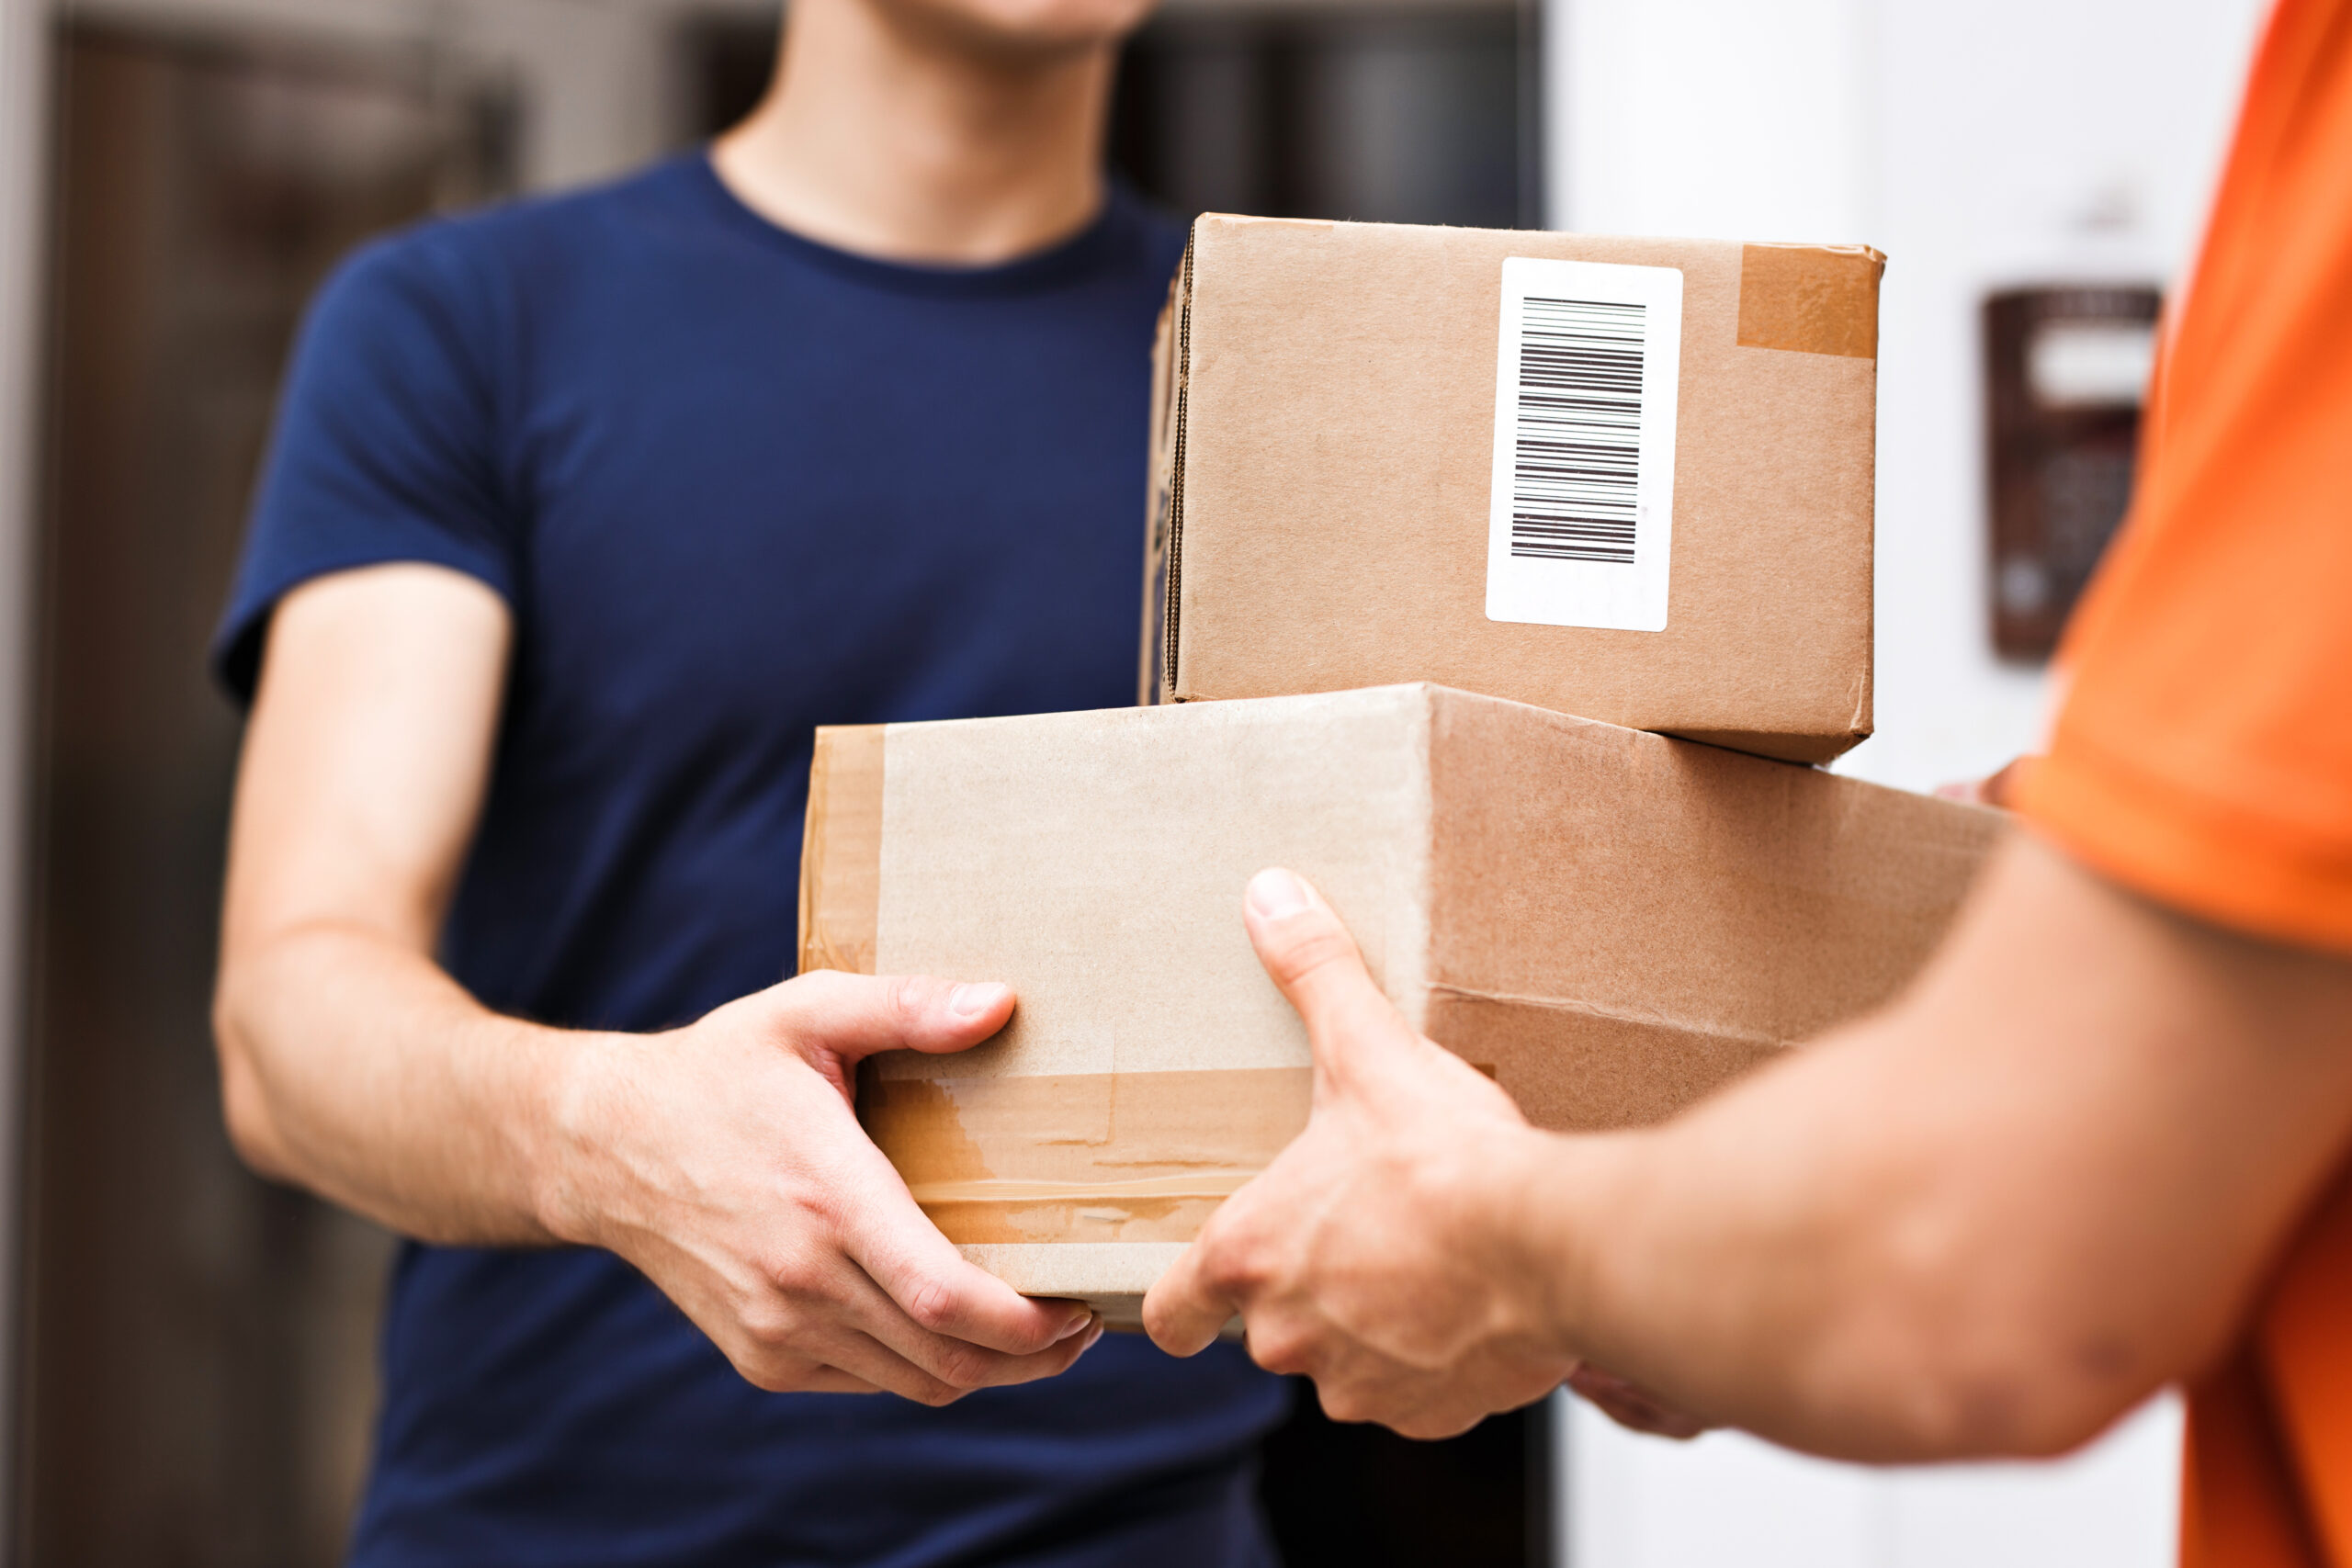 raven force we do delivery for ecommerce order fulfillment service